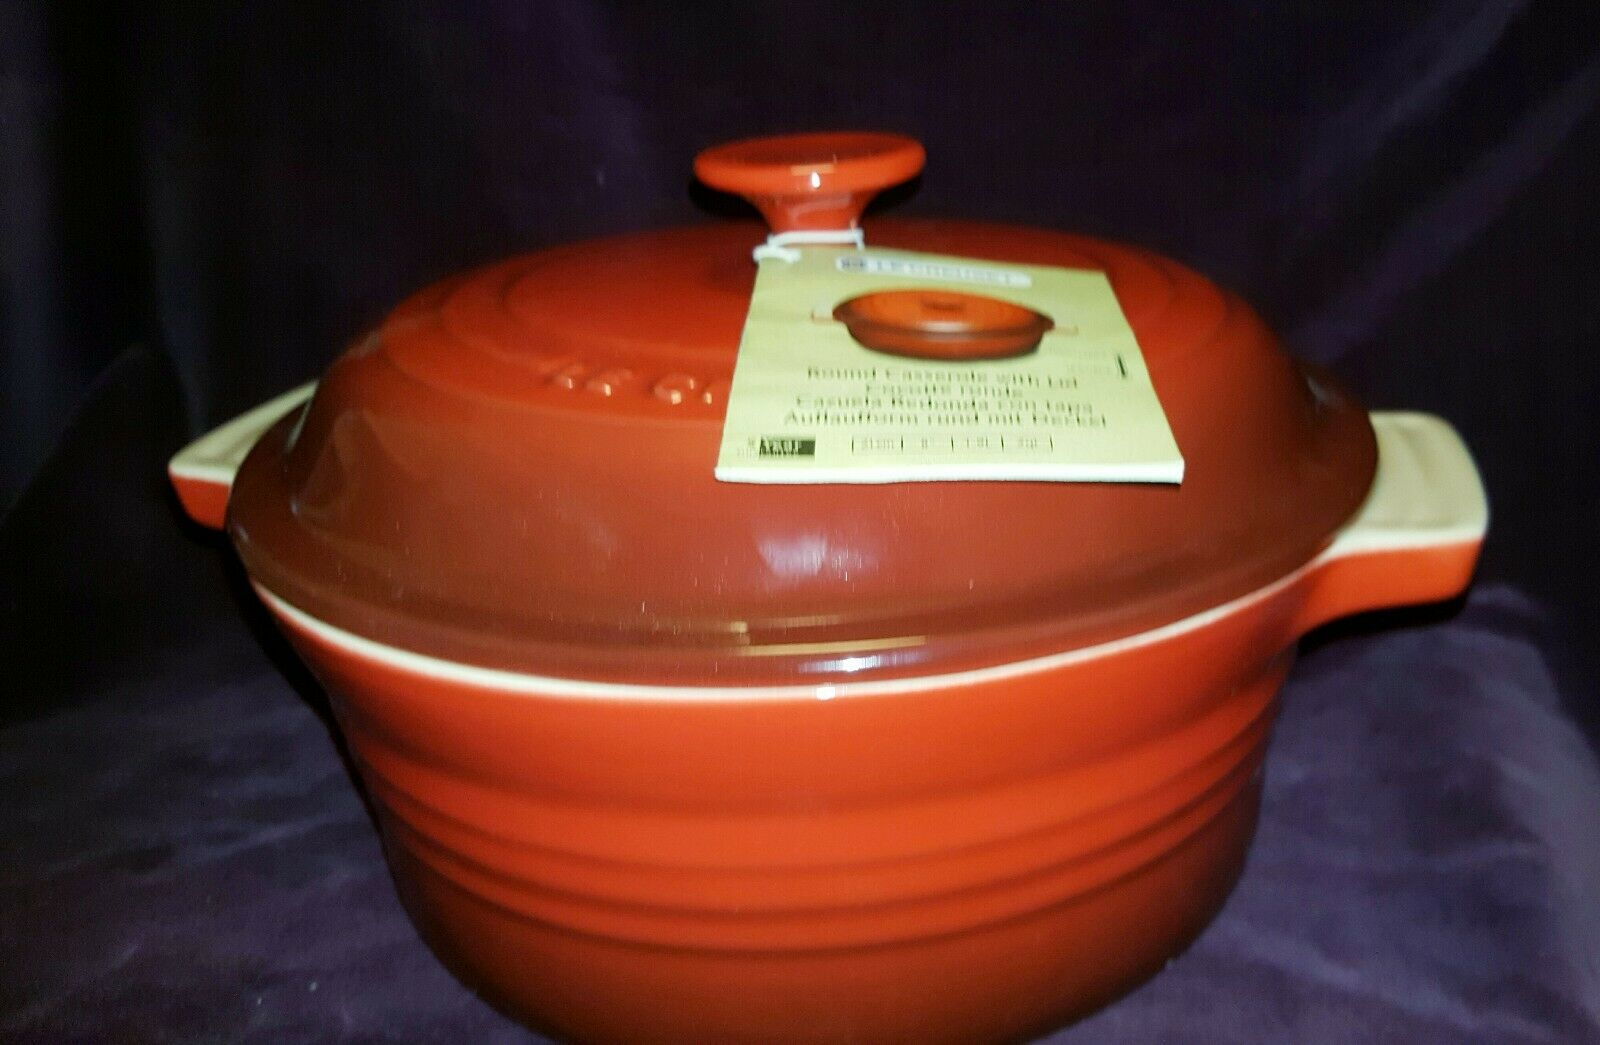 Le Creuset Stoneware 1 1 2 Qt Round Casserole Color Cherry Red For Sale Online Ebay